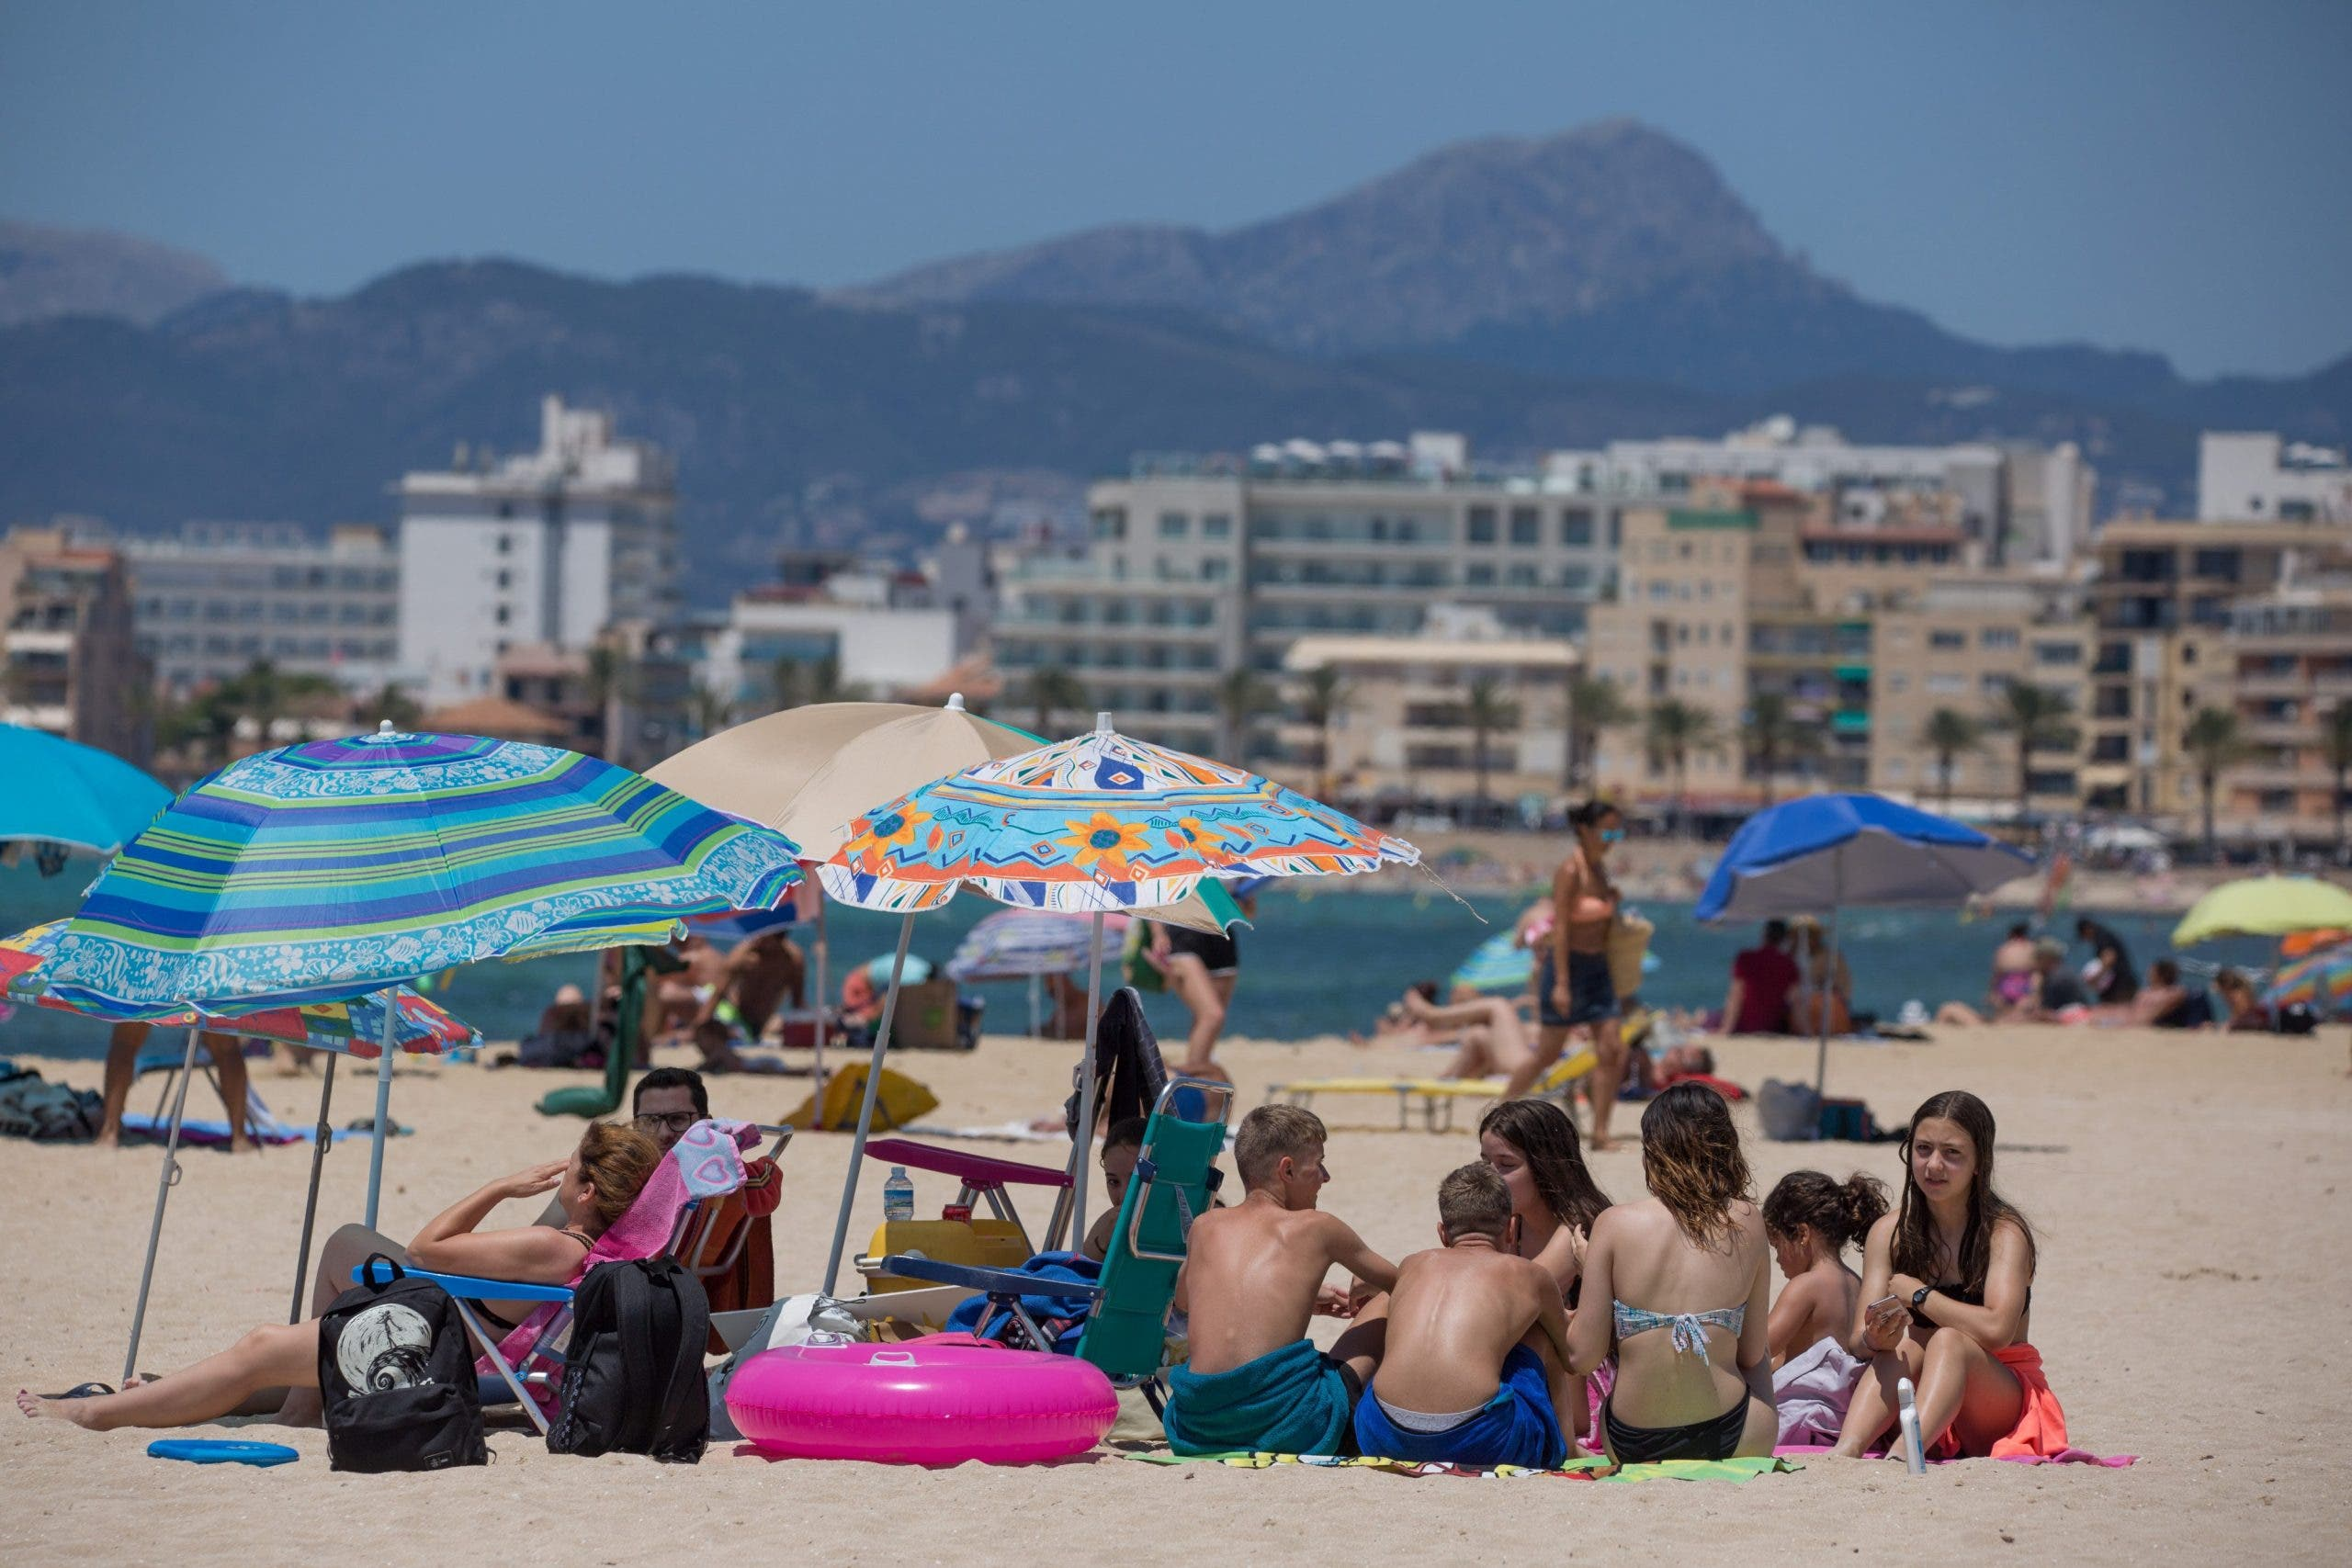 theolivepress.es - Germany downgrades Spain to 'high incidence area' in another blow for tourism industry - Olive Press News Spain